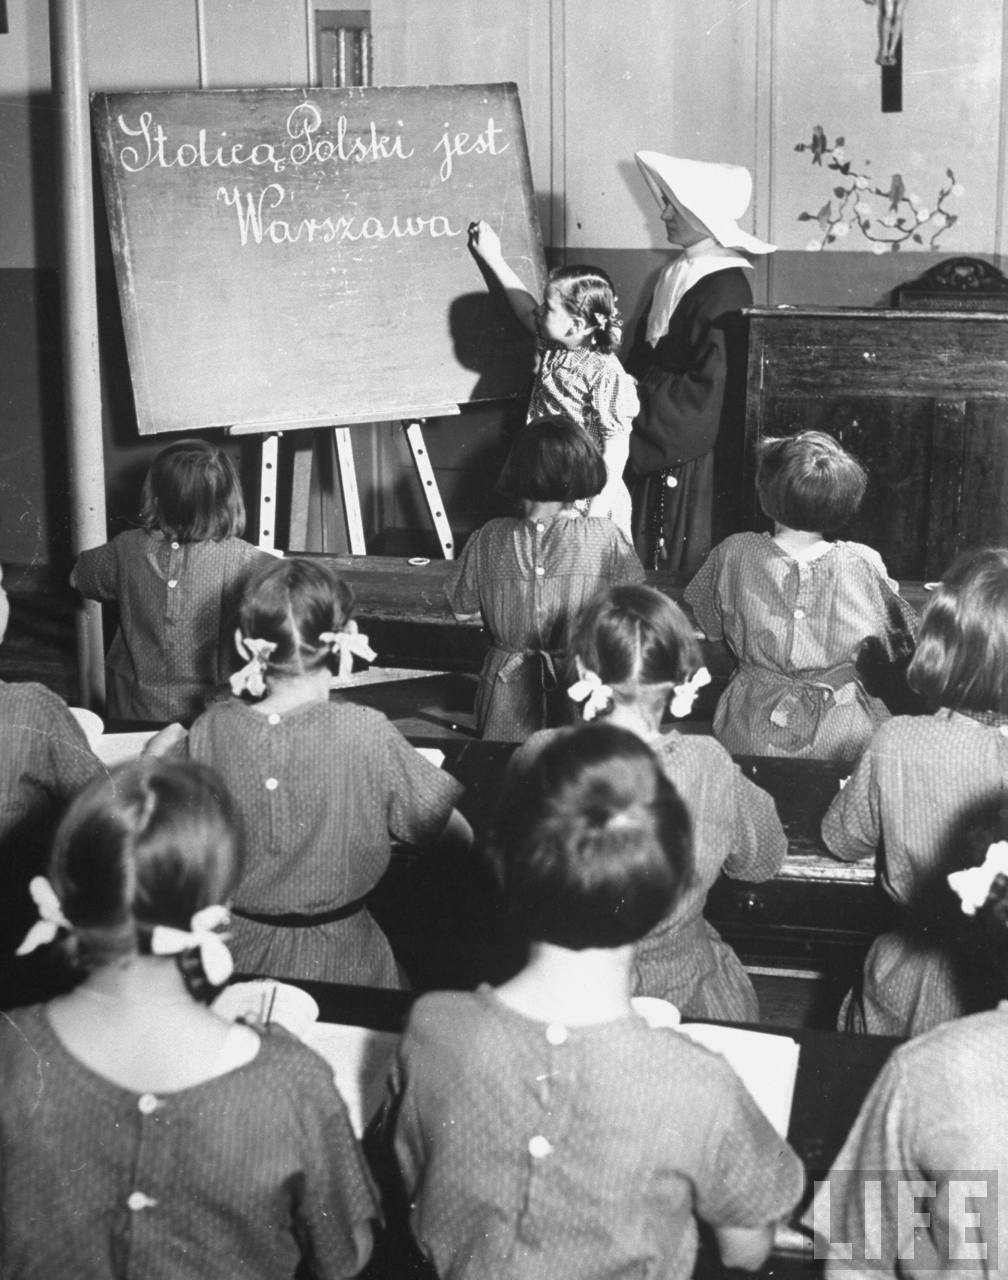 A girl working at the chalkboard of a classroom while a nun and her classmates look on.